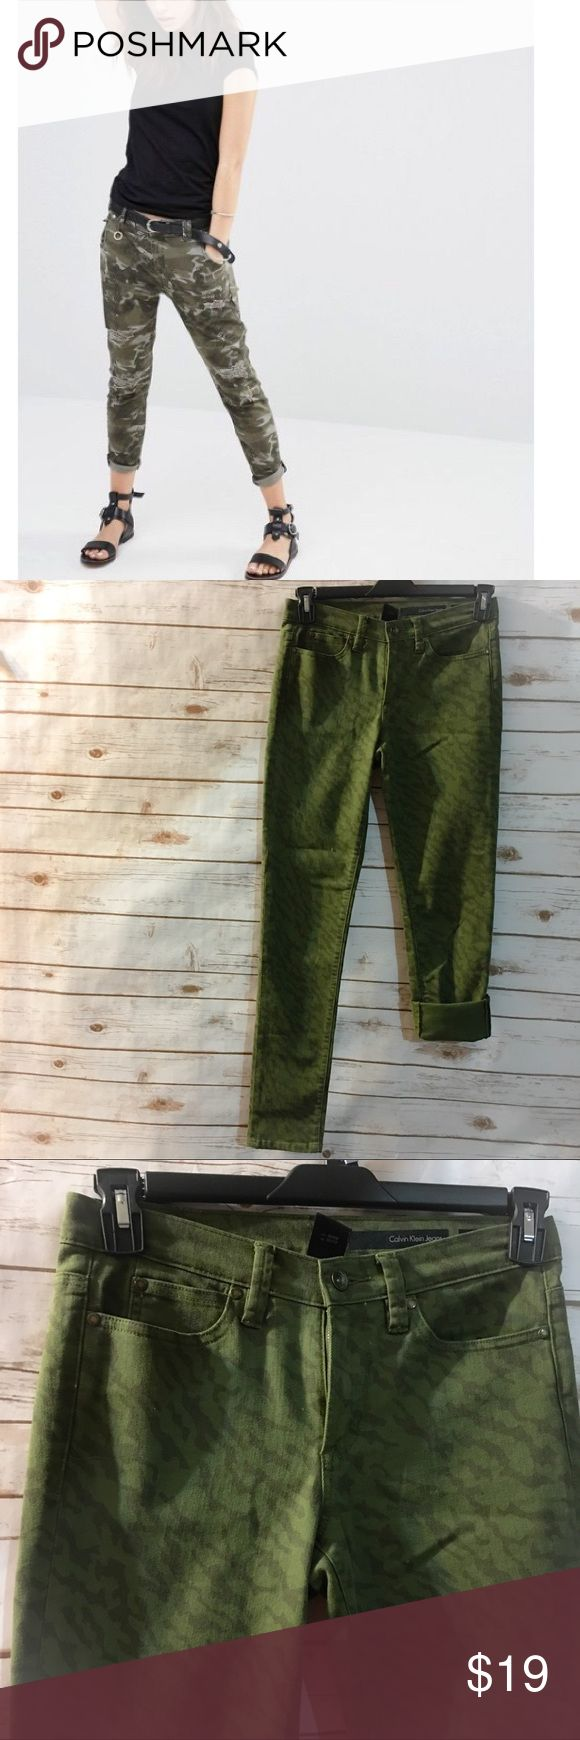 Calvin Klein Camo Skinny Jean ***Cover photo is from Lyst and is of a similar Pant but not identical, cover is used for style suggestion*** These are a super cute camo similar Skinny Pant from Calvin Klein. EUC! Bundle and Save! Calvin Klein Pants Skinny